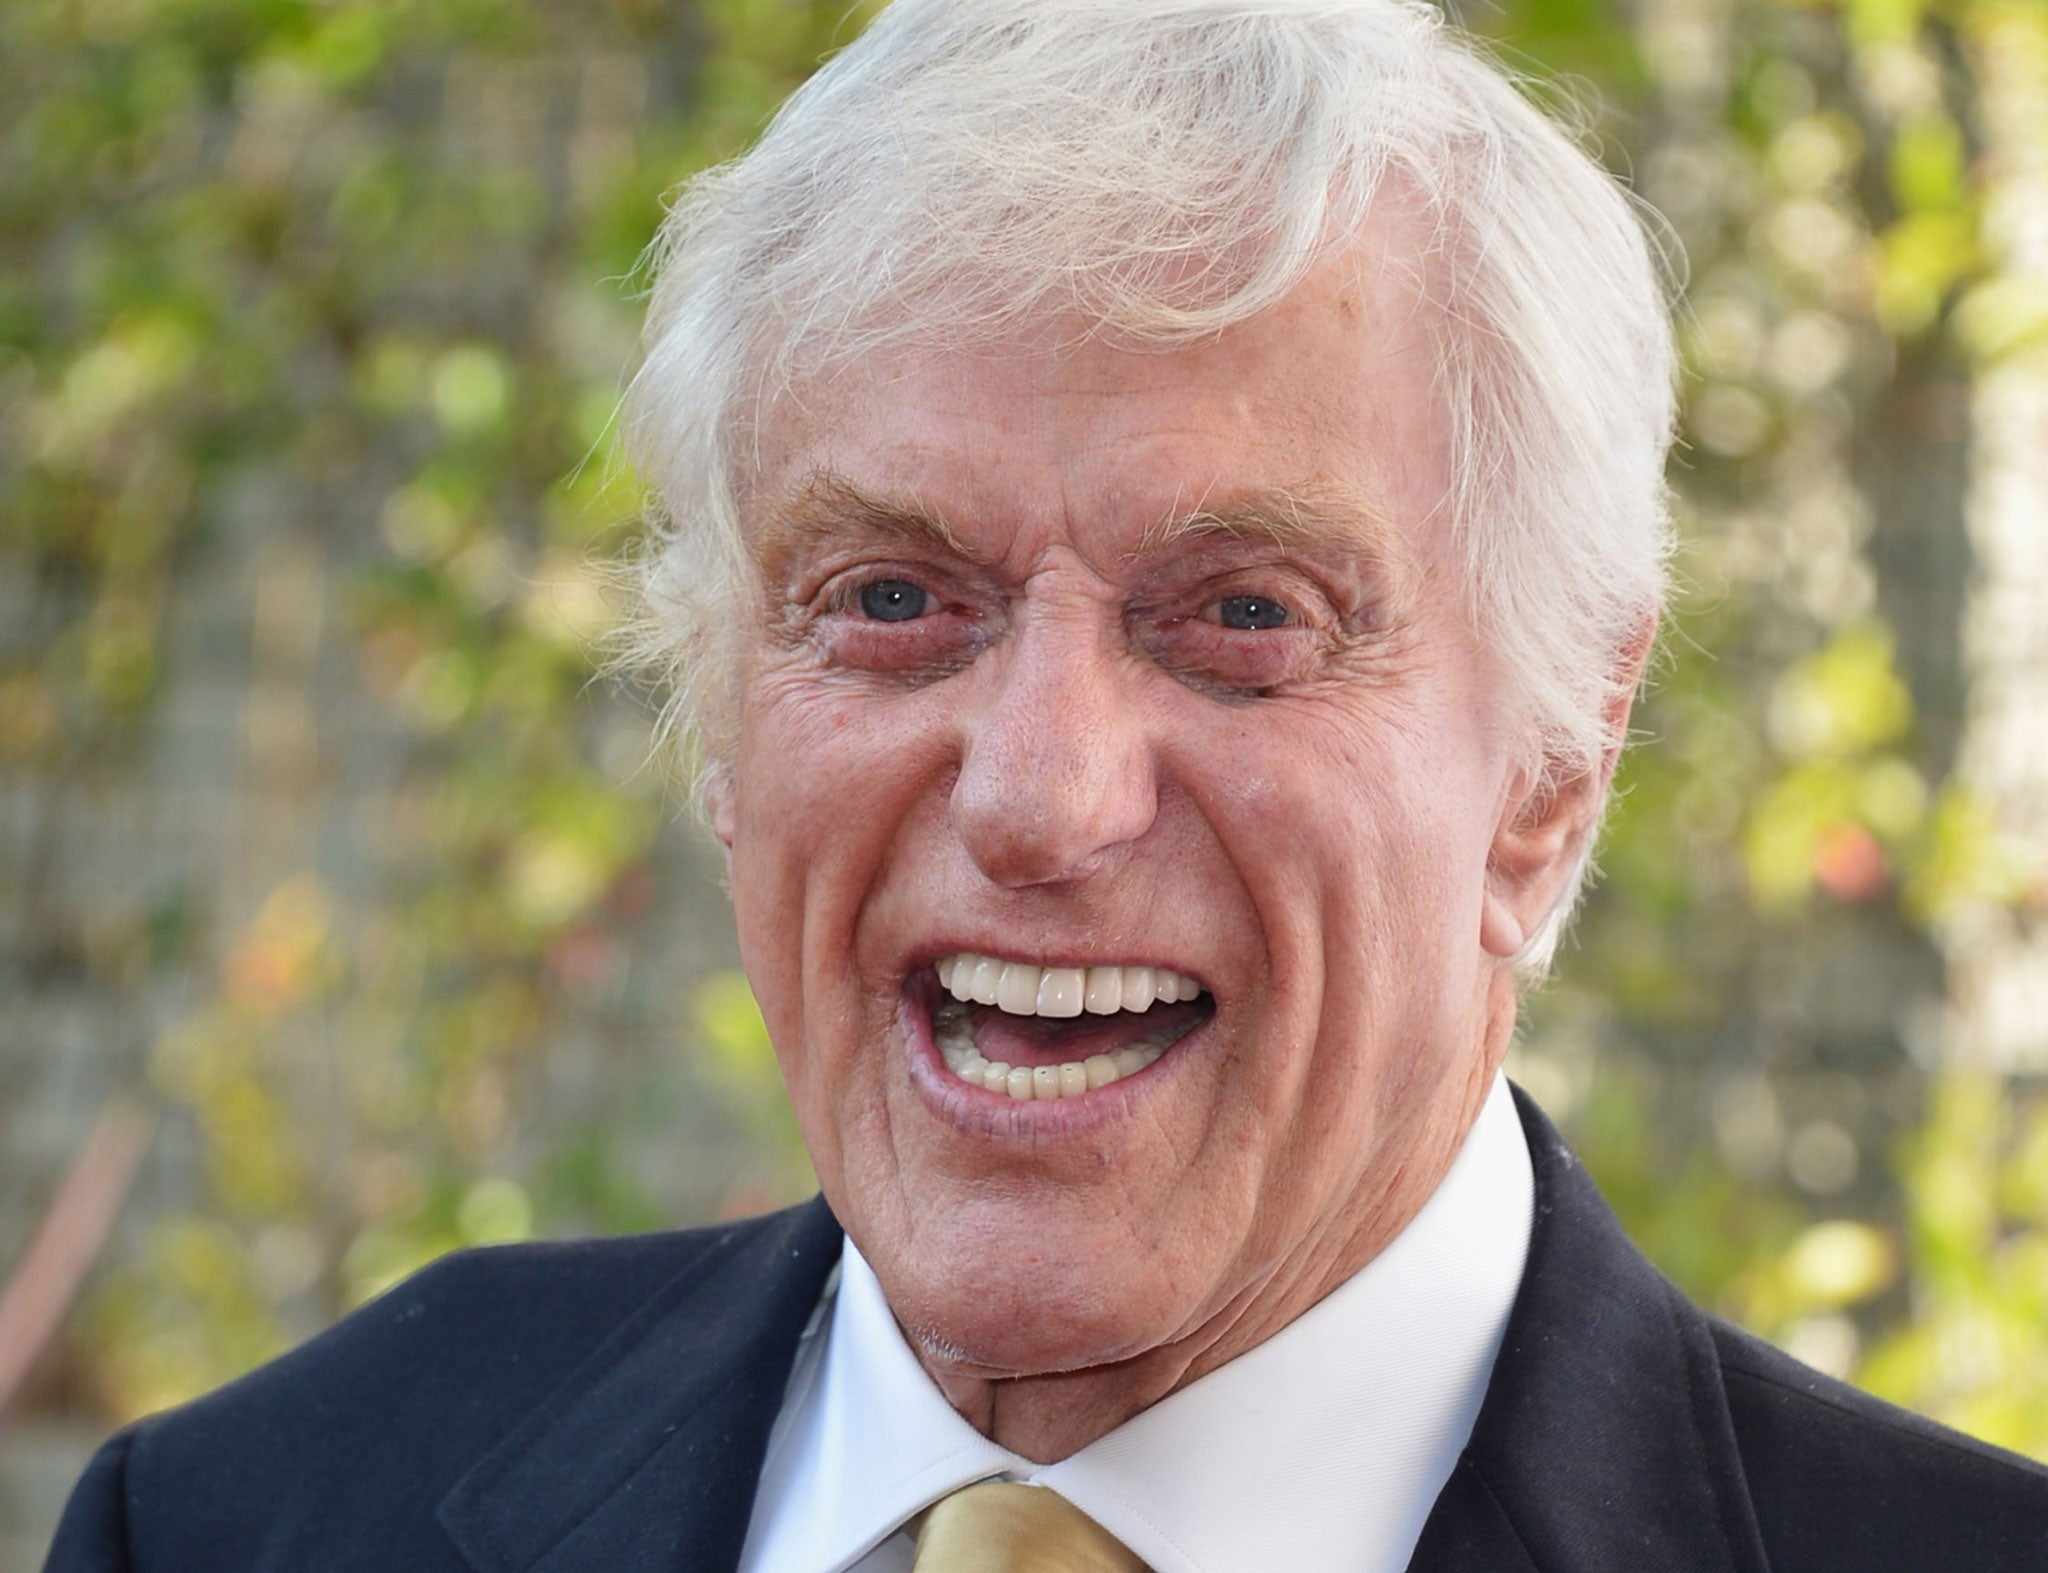 Dick Van Dyke to be honoured with Bafta's Excellence in TV award